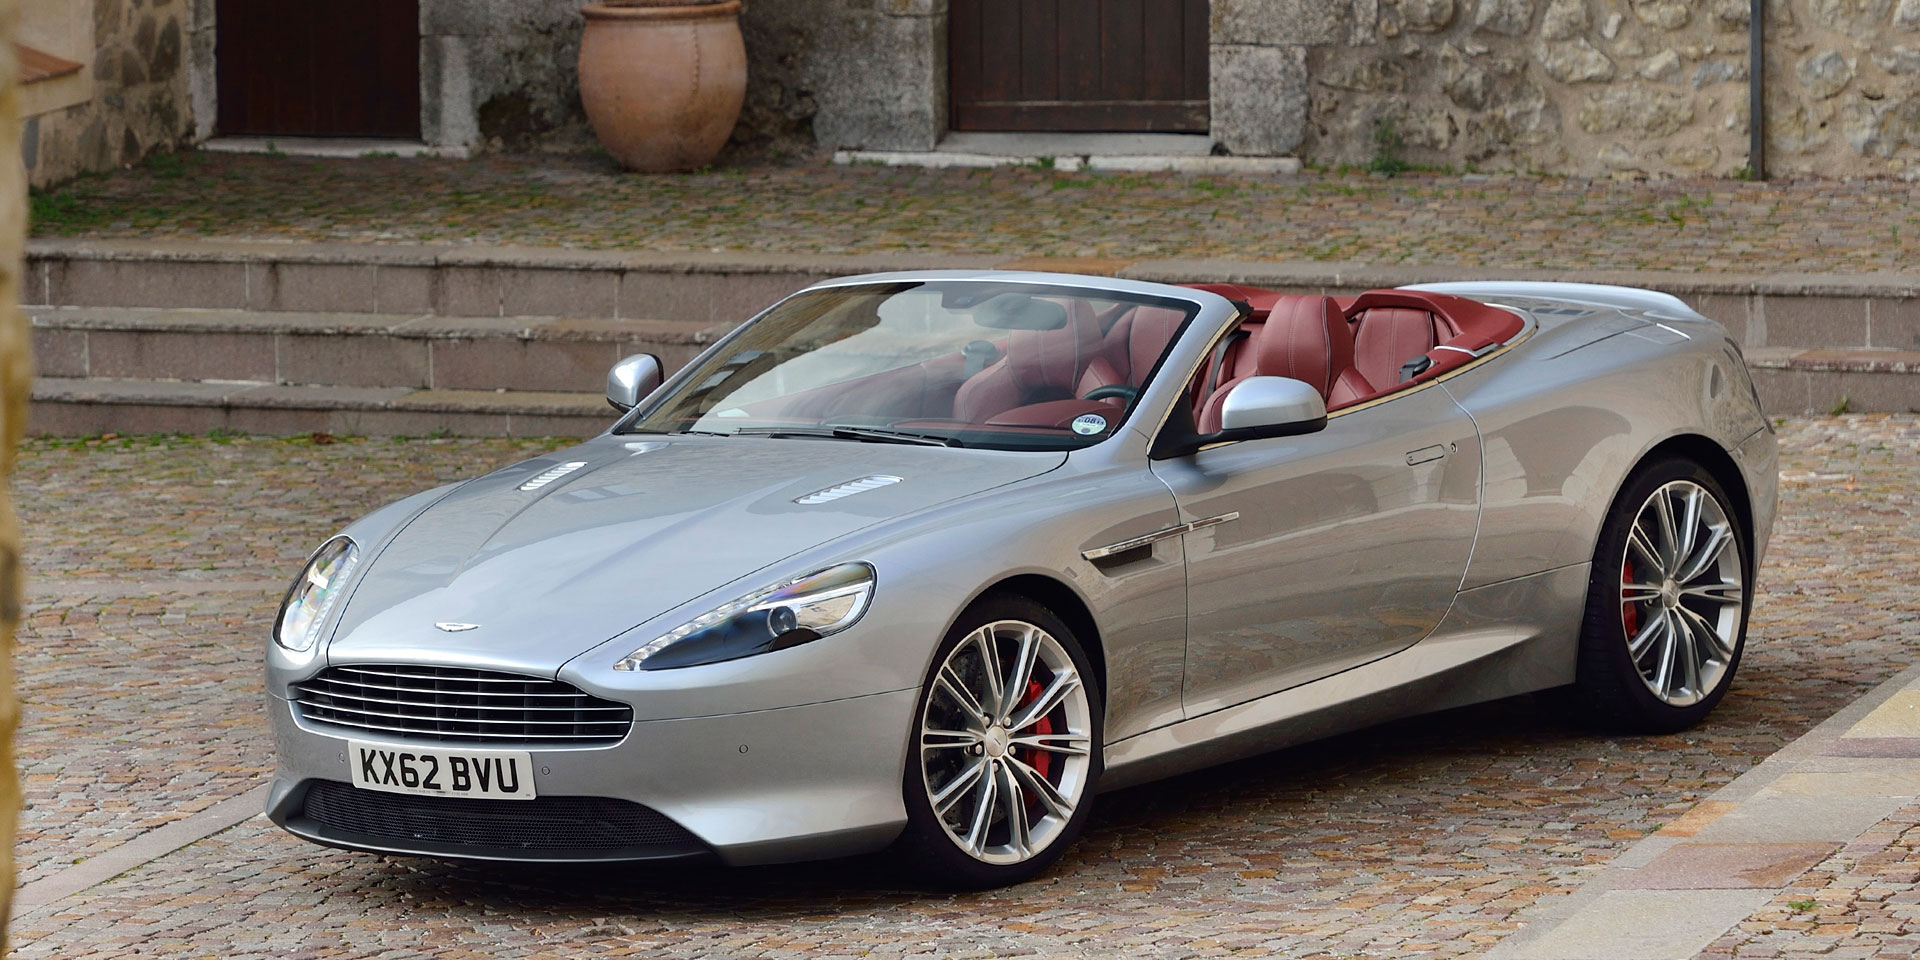 Used Cars For Sale New Cars For Sale Car Dealers Cars Chicago - Aston martin used cars